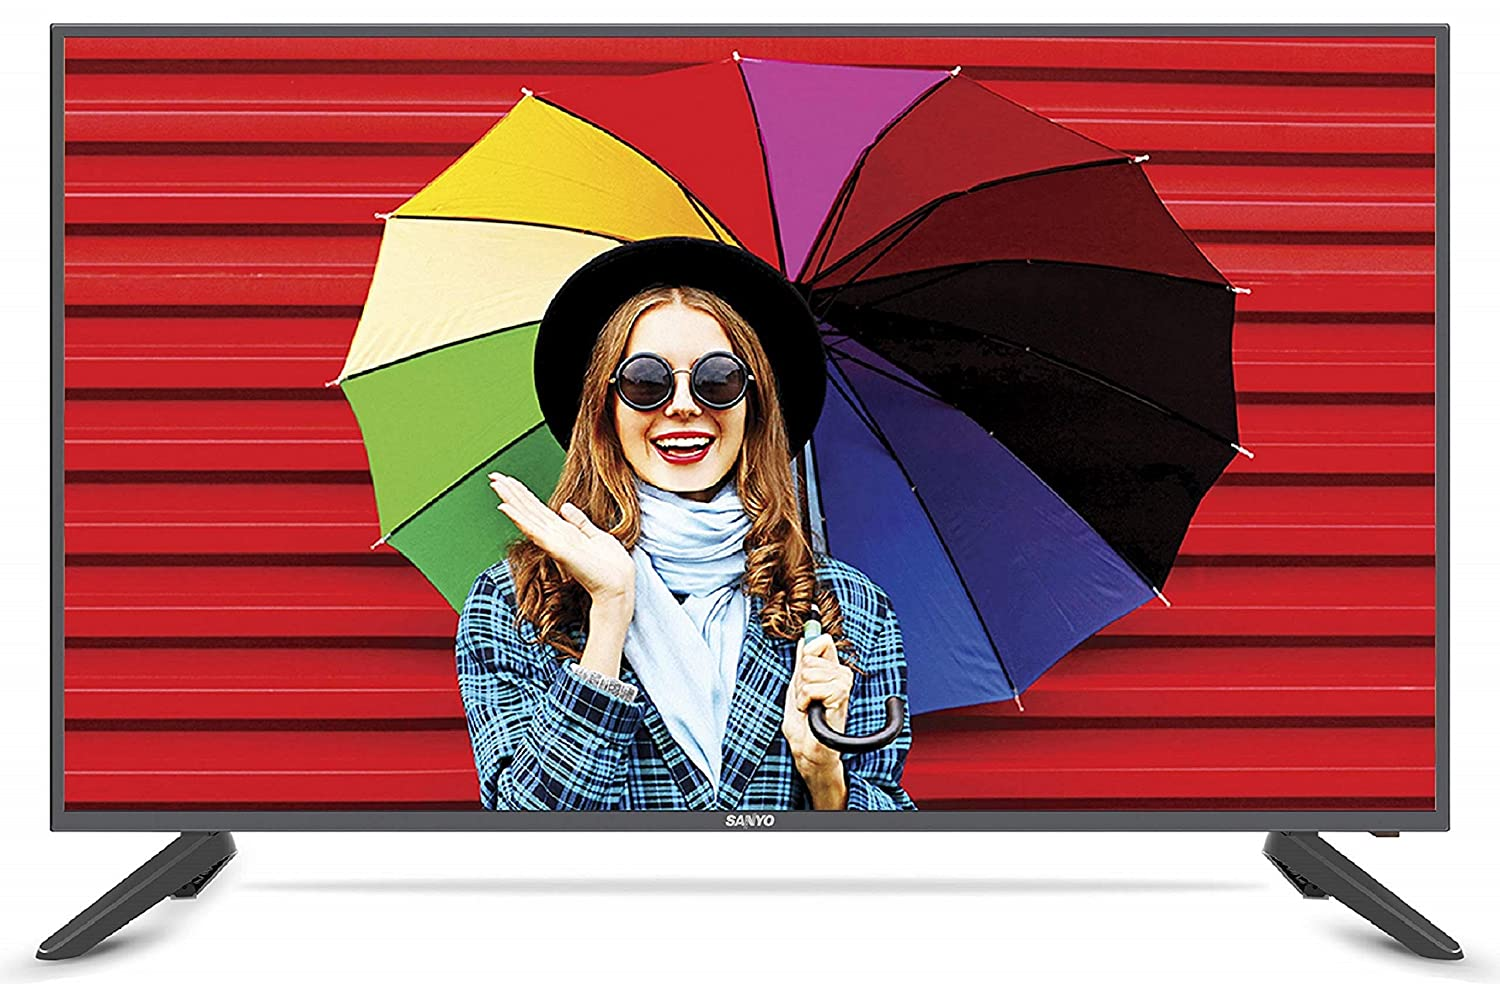 Sanyo 109 cm (43 Inches) Full HD IPS LED TV XT-43S7300F (Black) (2019 Model)